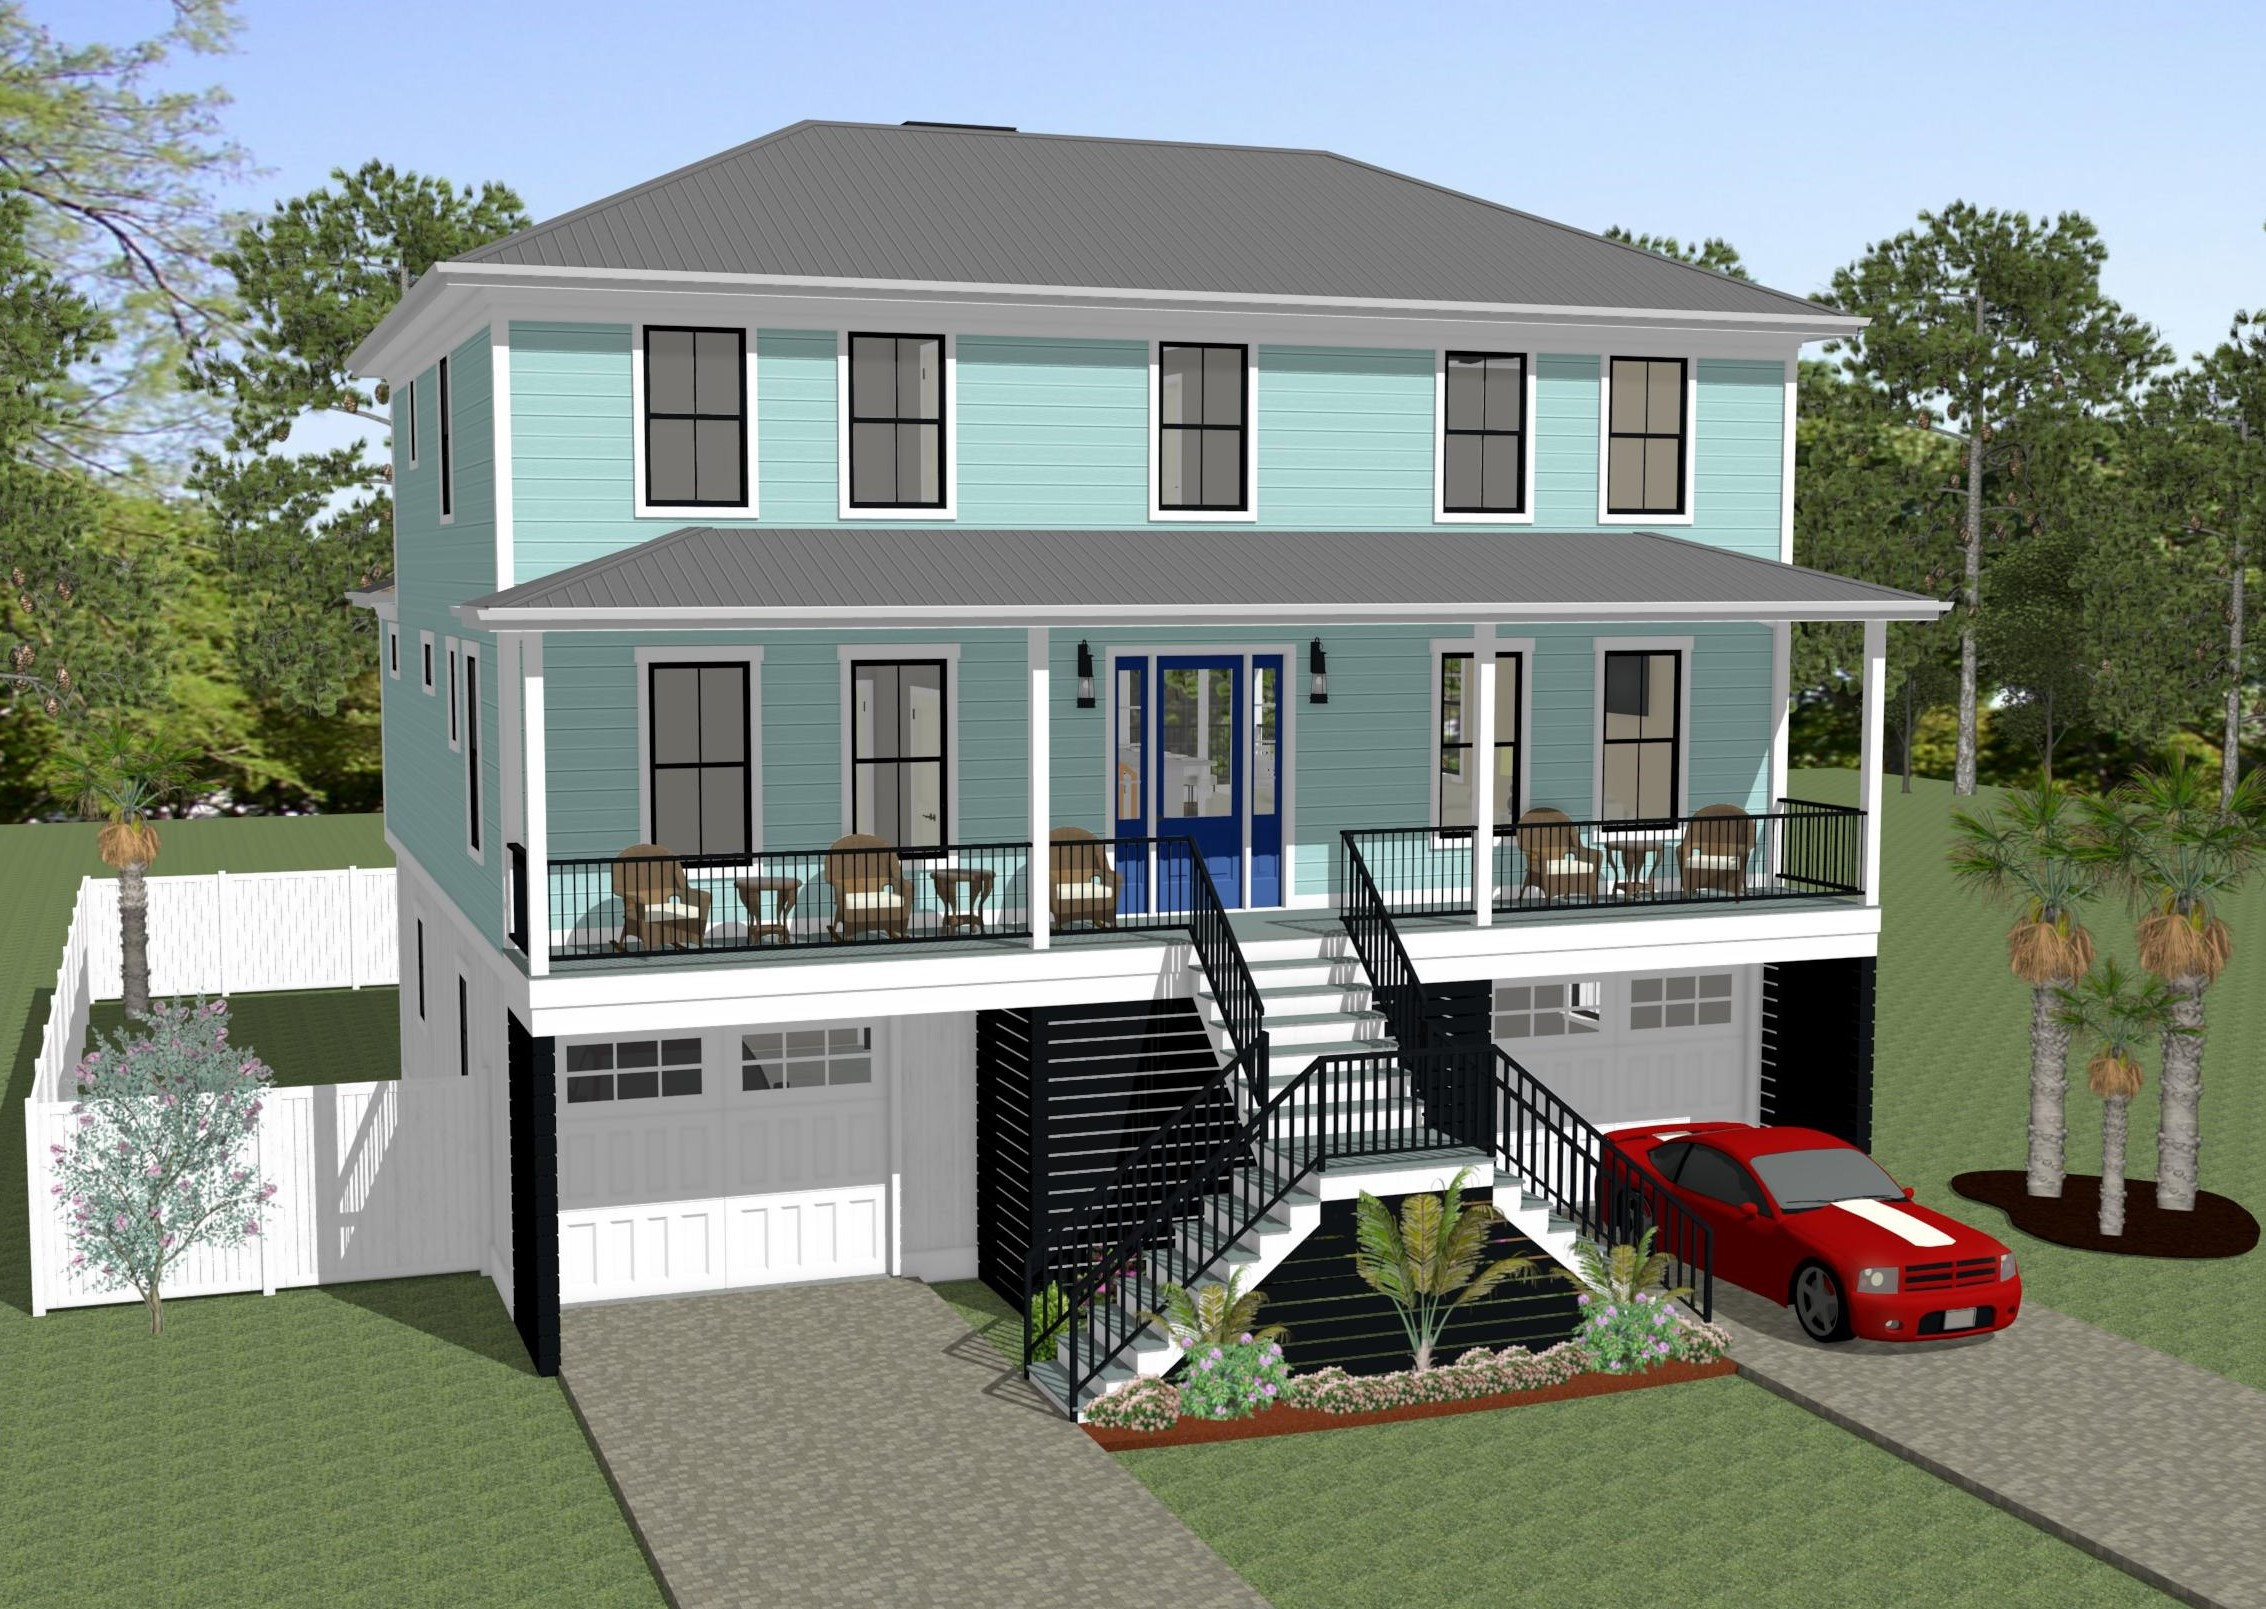 20-138 Spec House Rendering